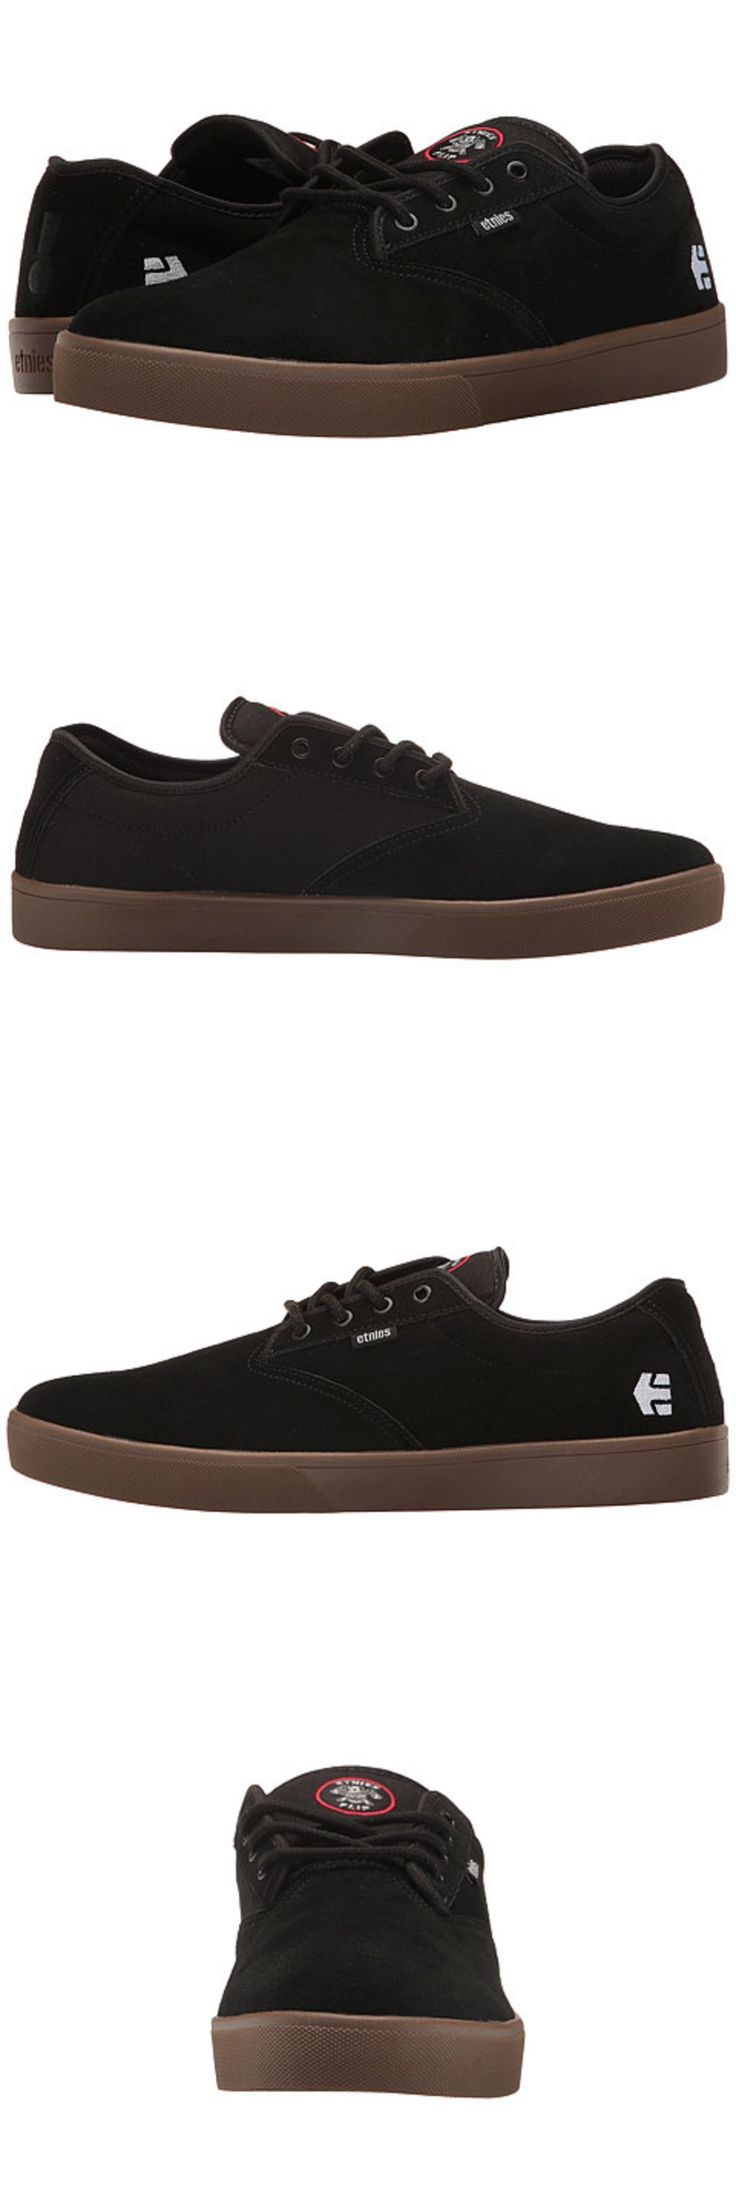 Books and Video 58128: Etnies 4107000518 964 Jameson Sl X Flip Mn S (M) Black Gum Suede Skate Shoes -> BUY IT NOW ONLY: $34.99 on eBay!